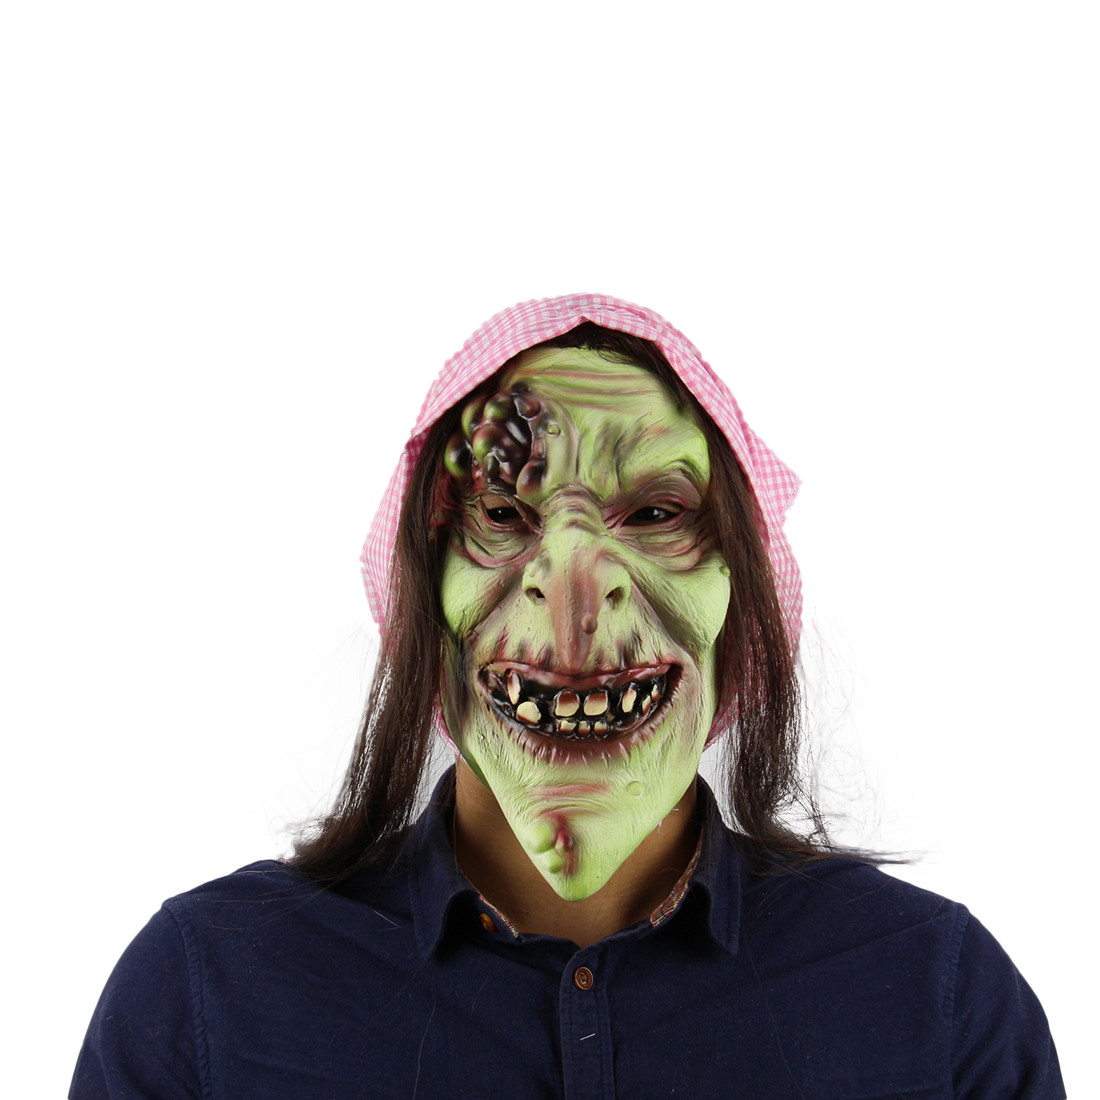 Compare Prices on Halloween Masks- Online Shopping/Buy Low Price ...